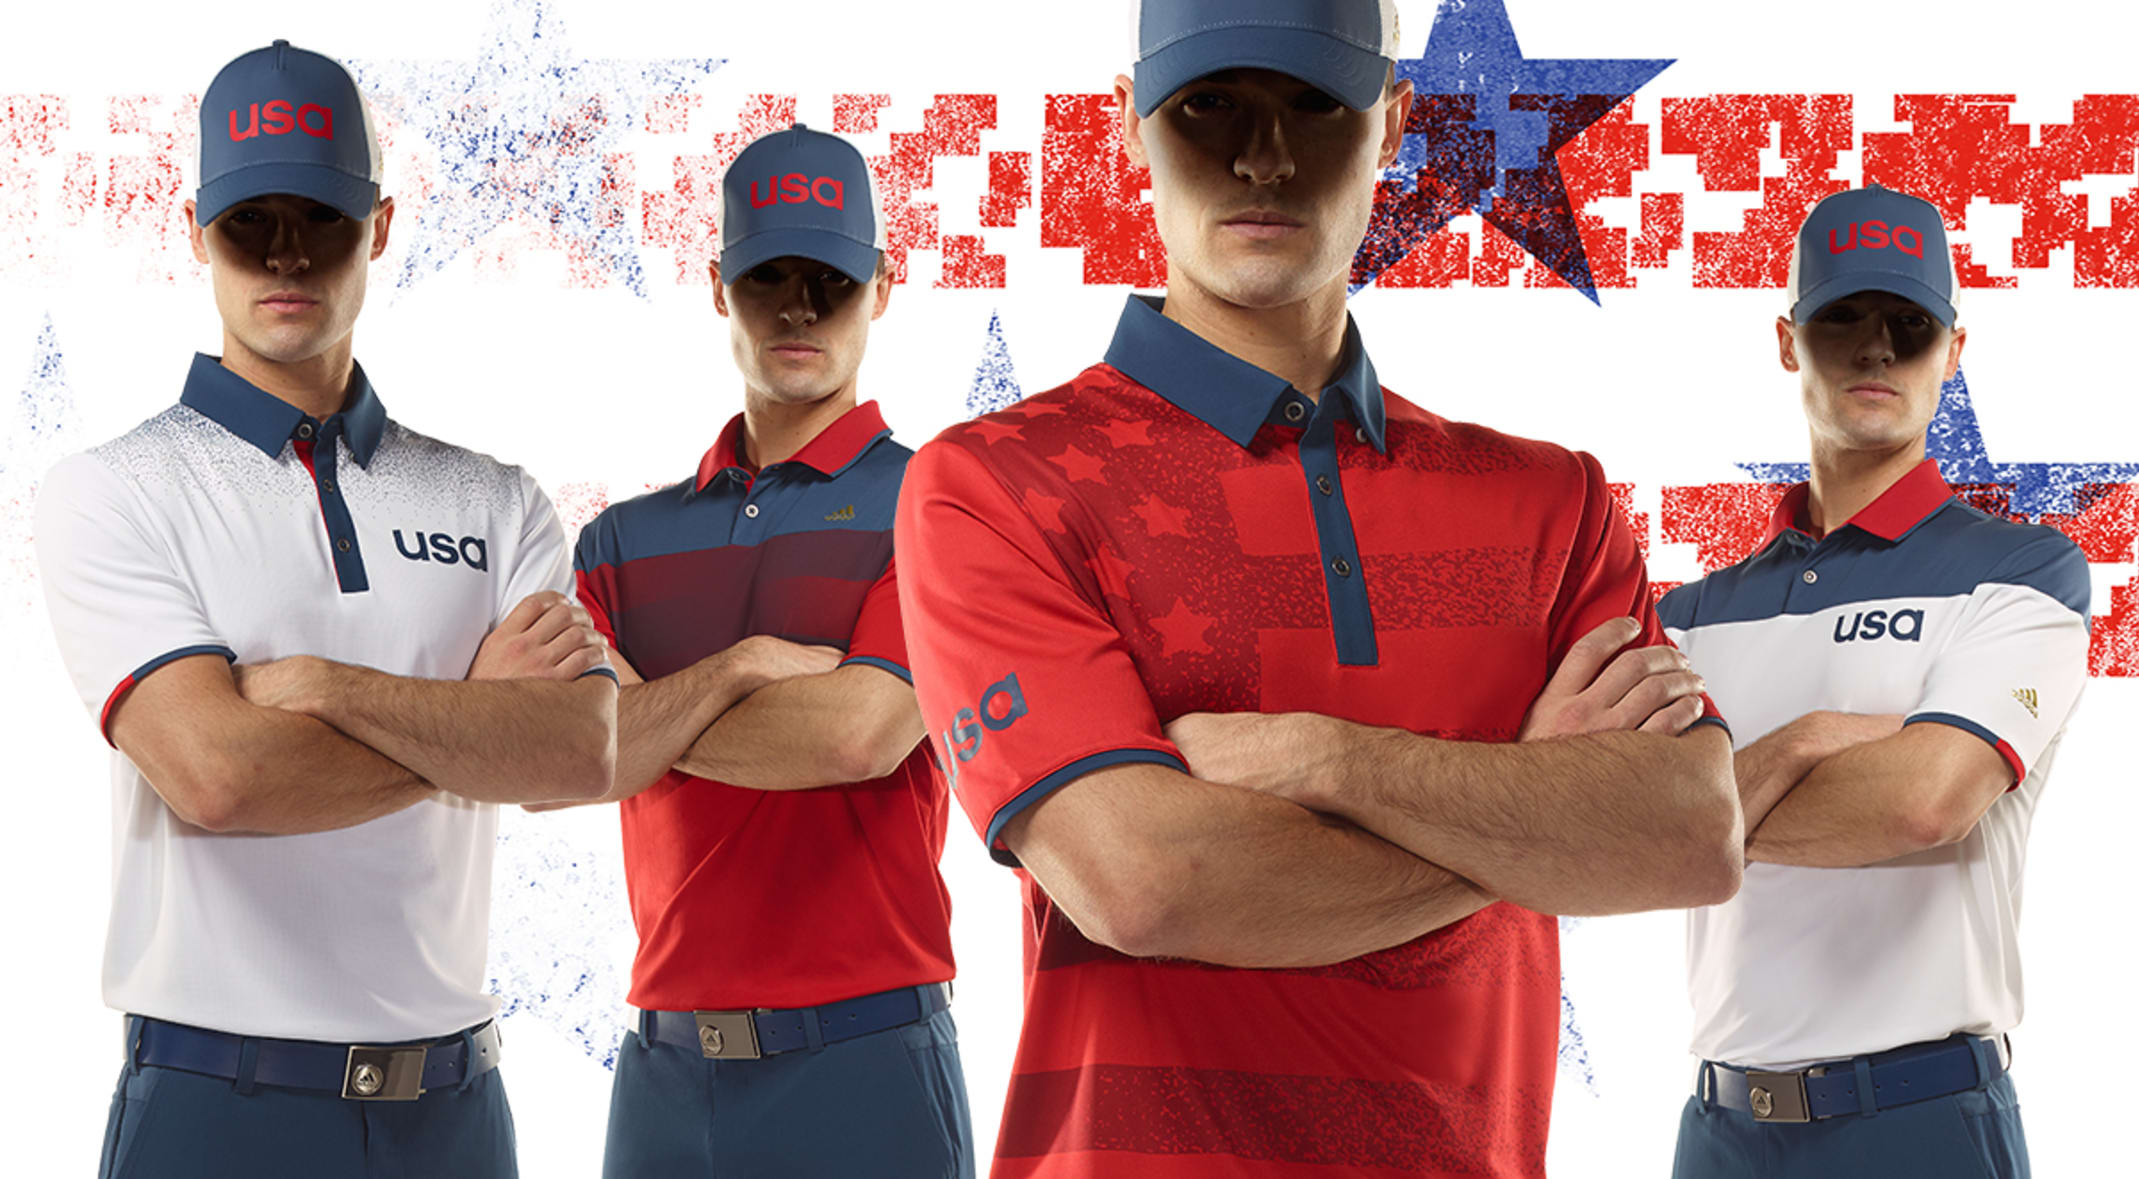 a04e0d05f79 Adidas Golf has been in the process of gearing up the U.S. golfers for Rio  since